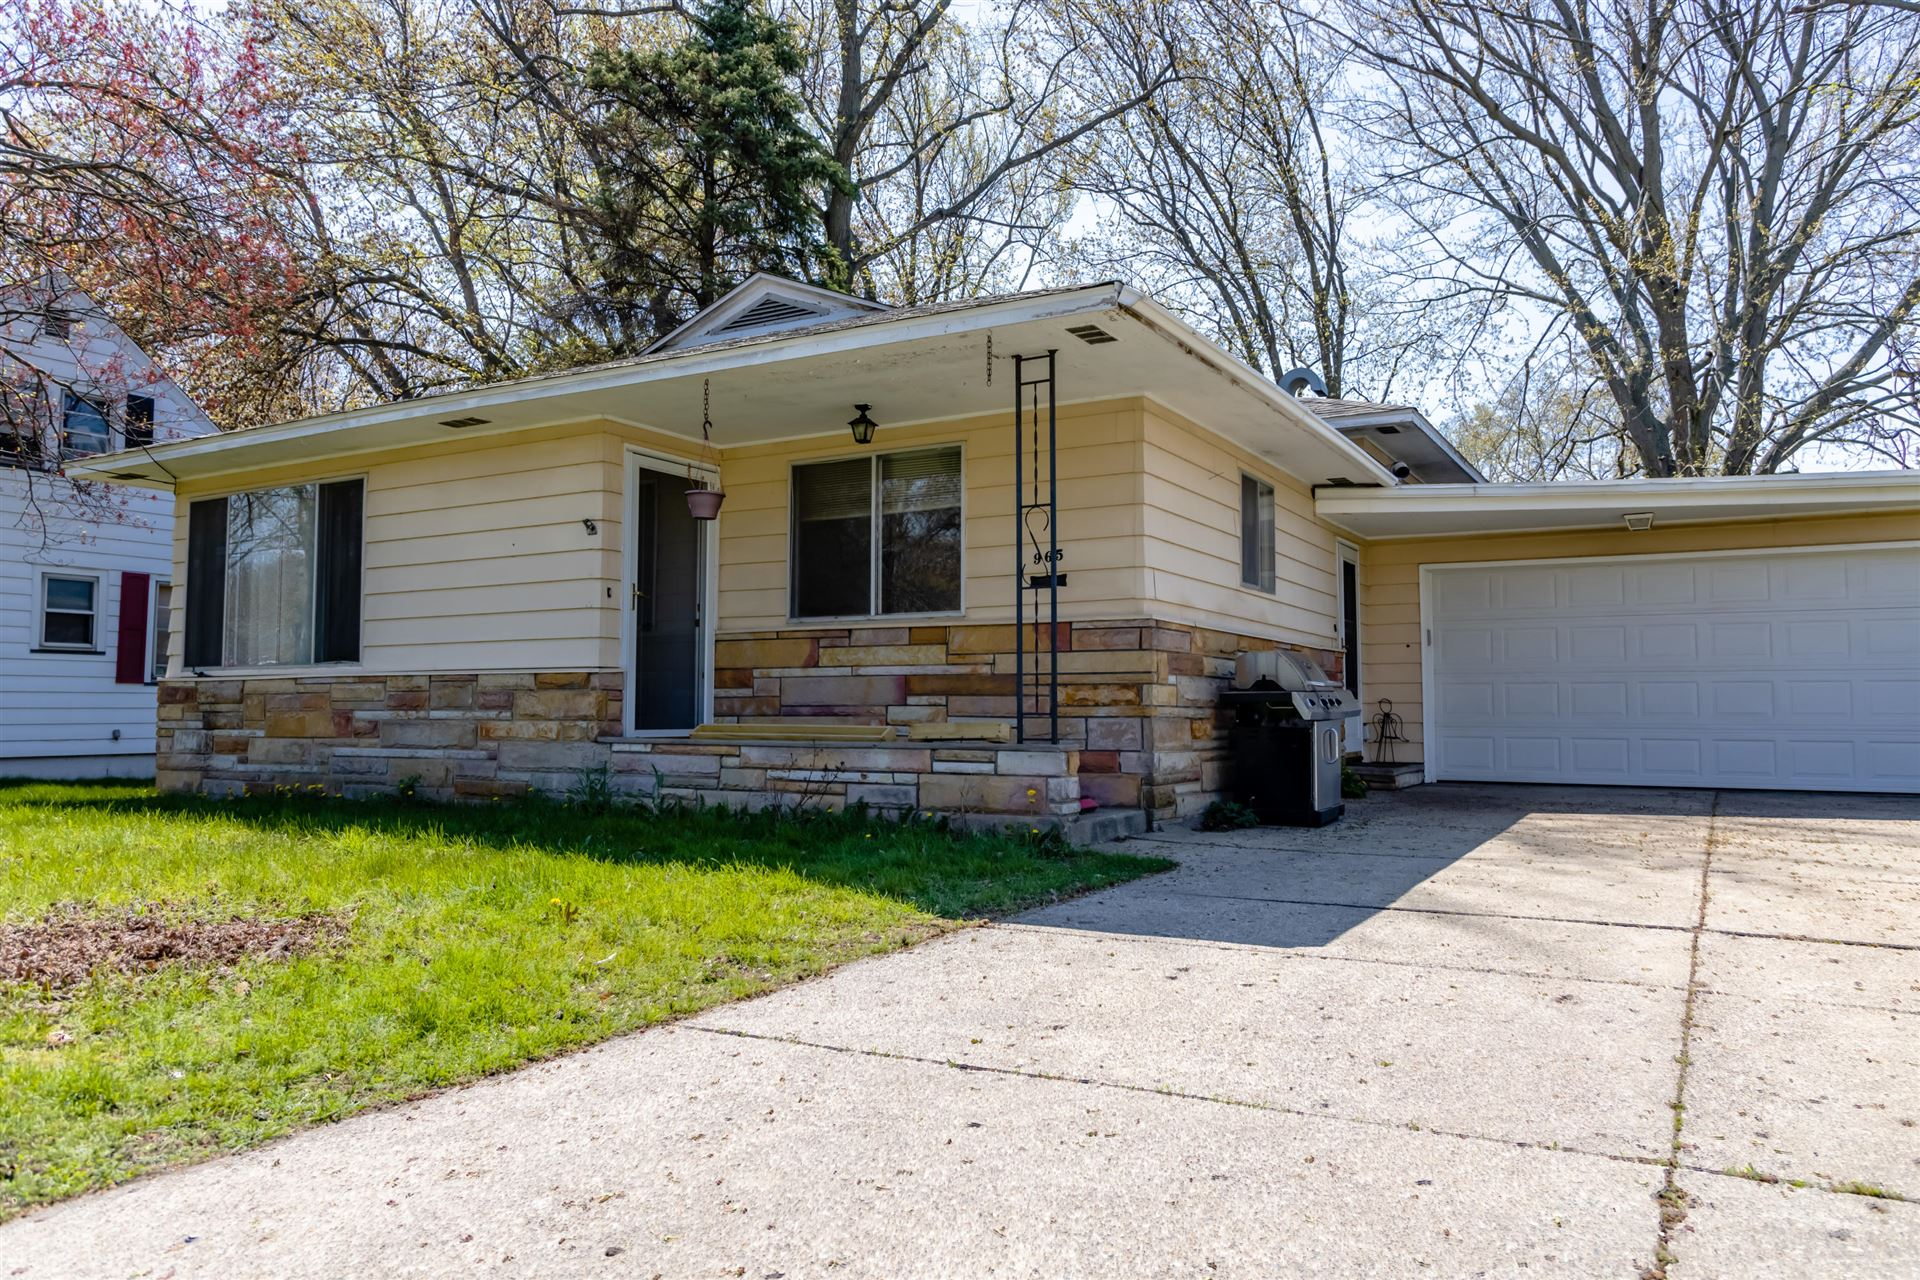 965 W Summit Avenue, Muskegon, MI 49441 - MLS#: 21016895